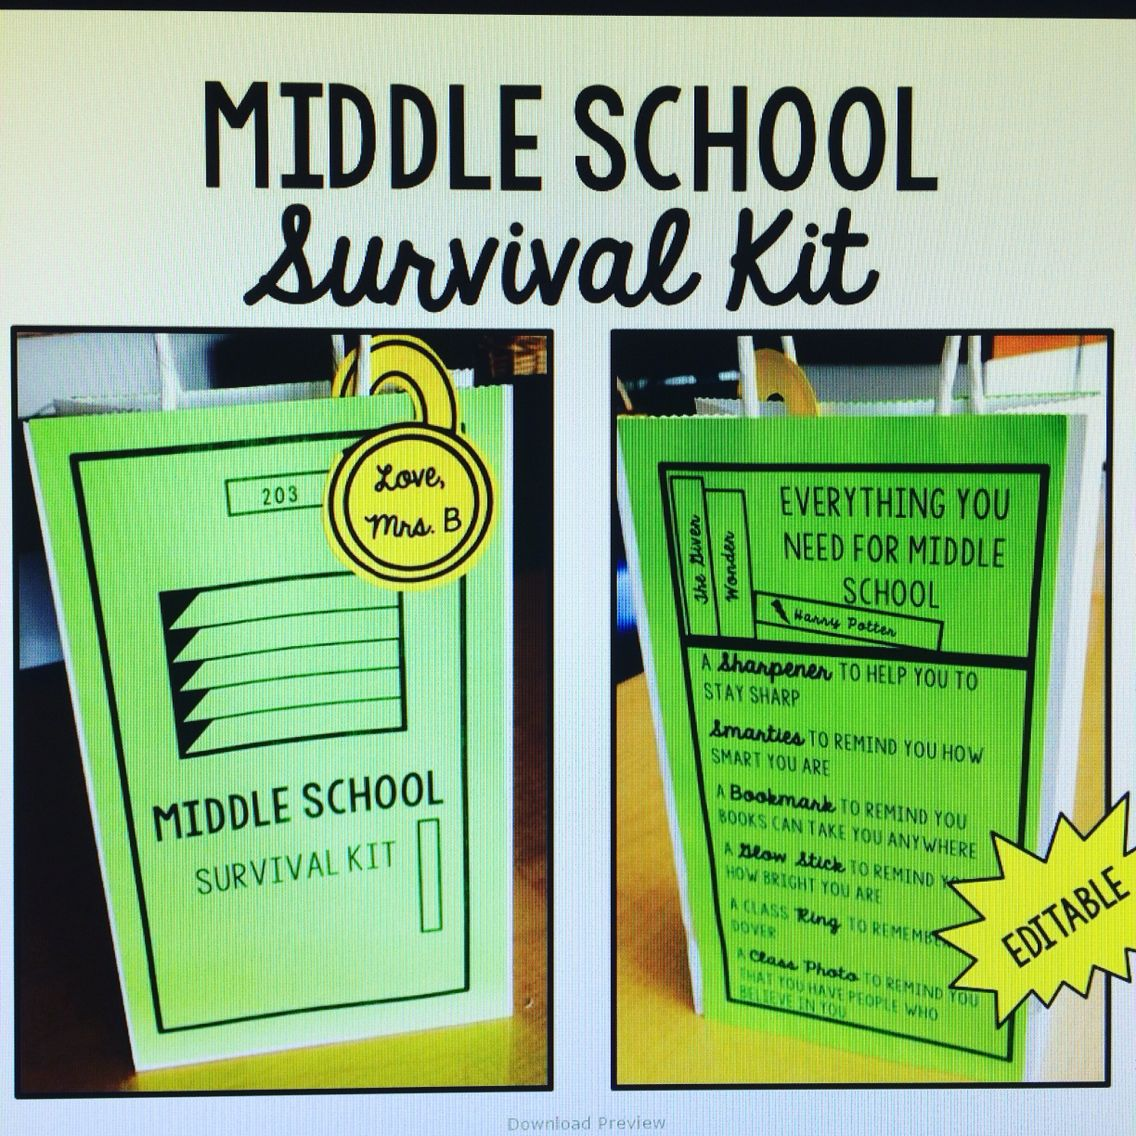 Middle School Survival Kit End Of Year Gift For Students Going To